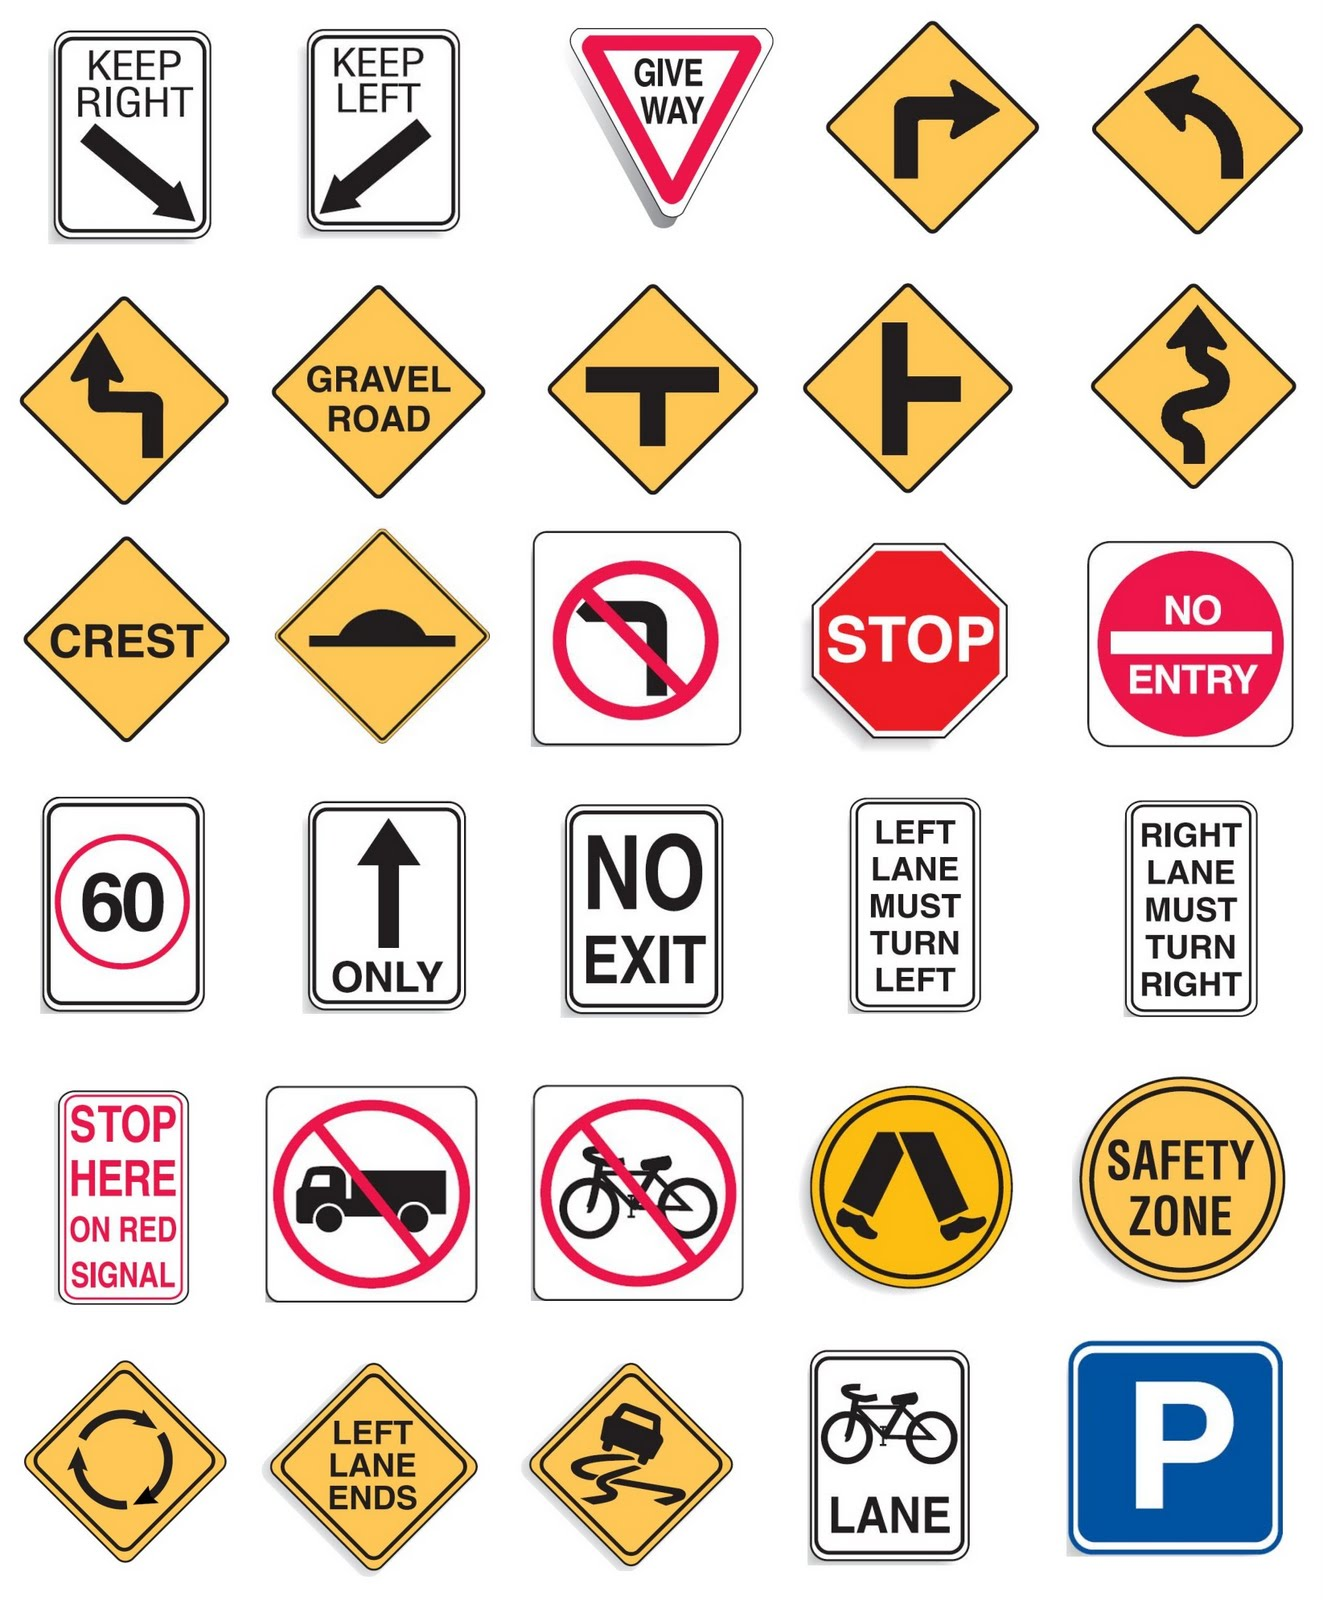 This Week's Bingo Theme: Road Signs.